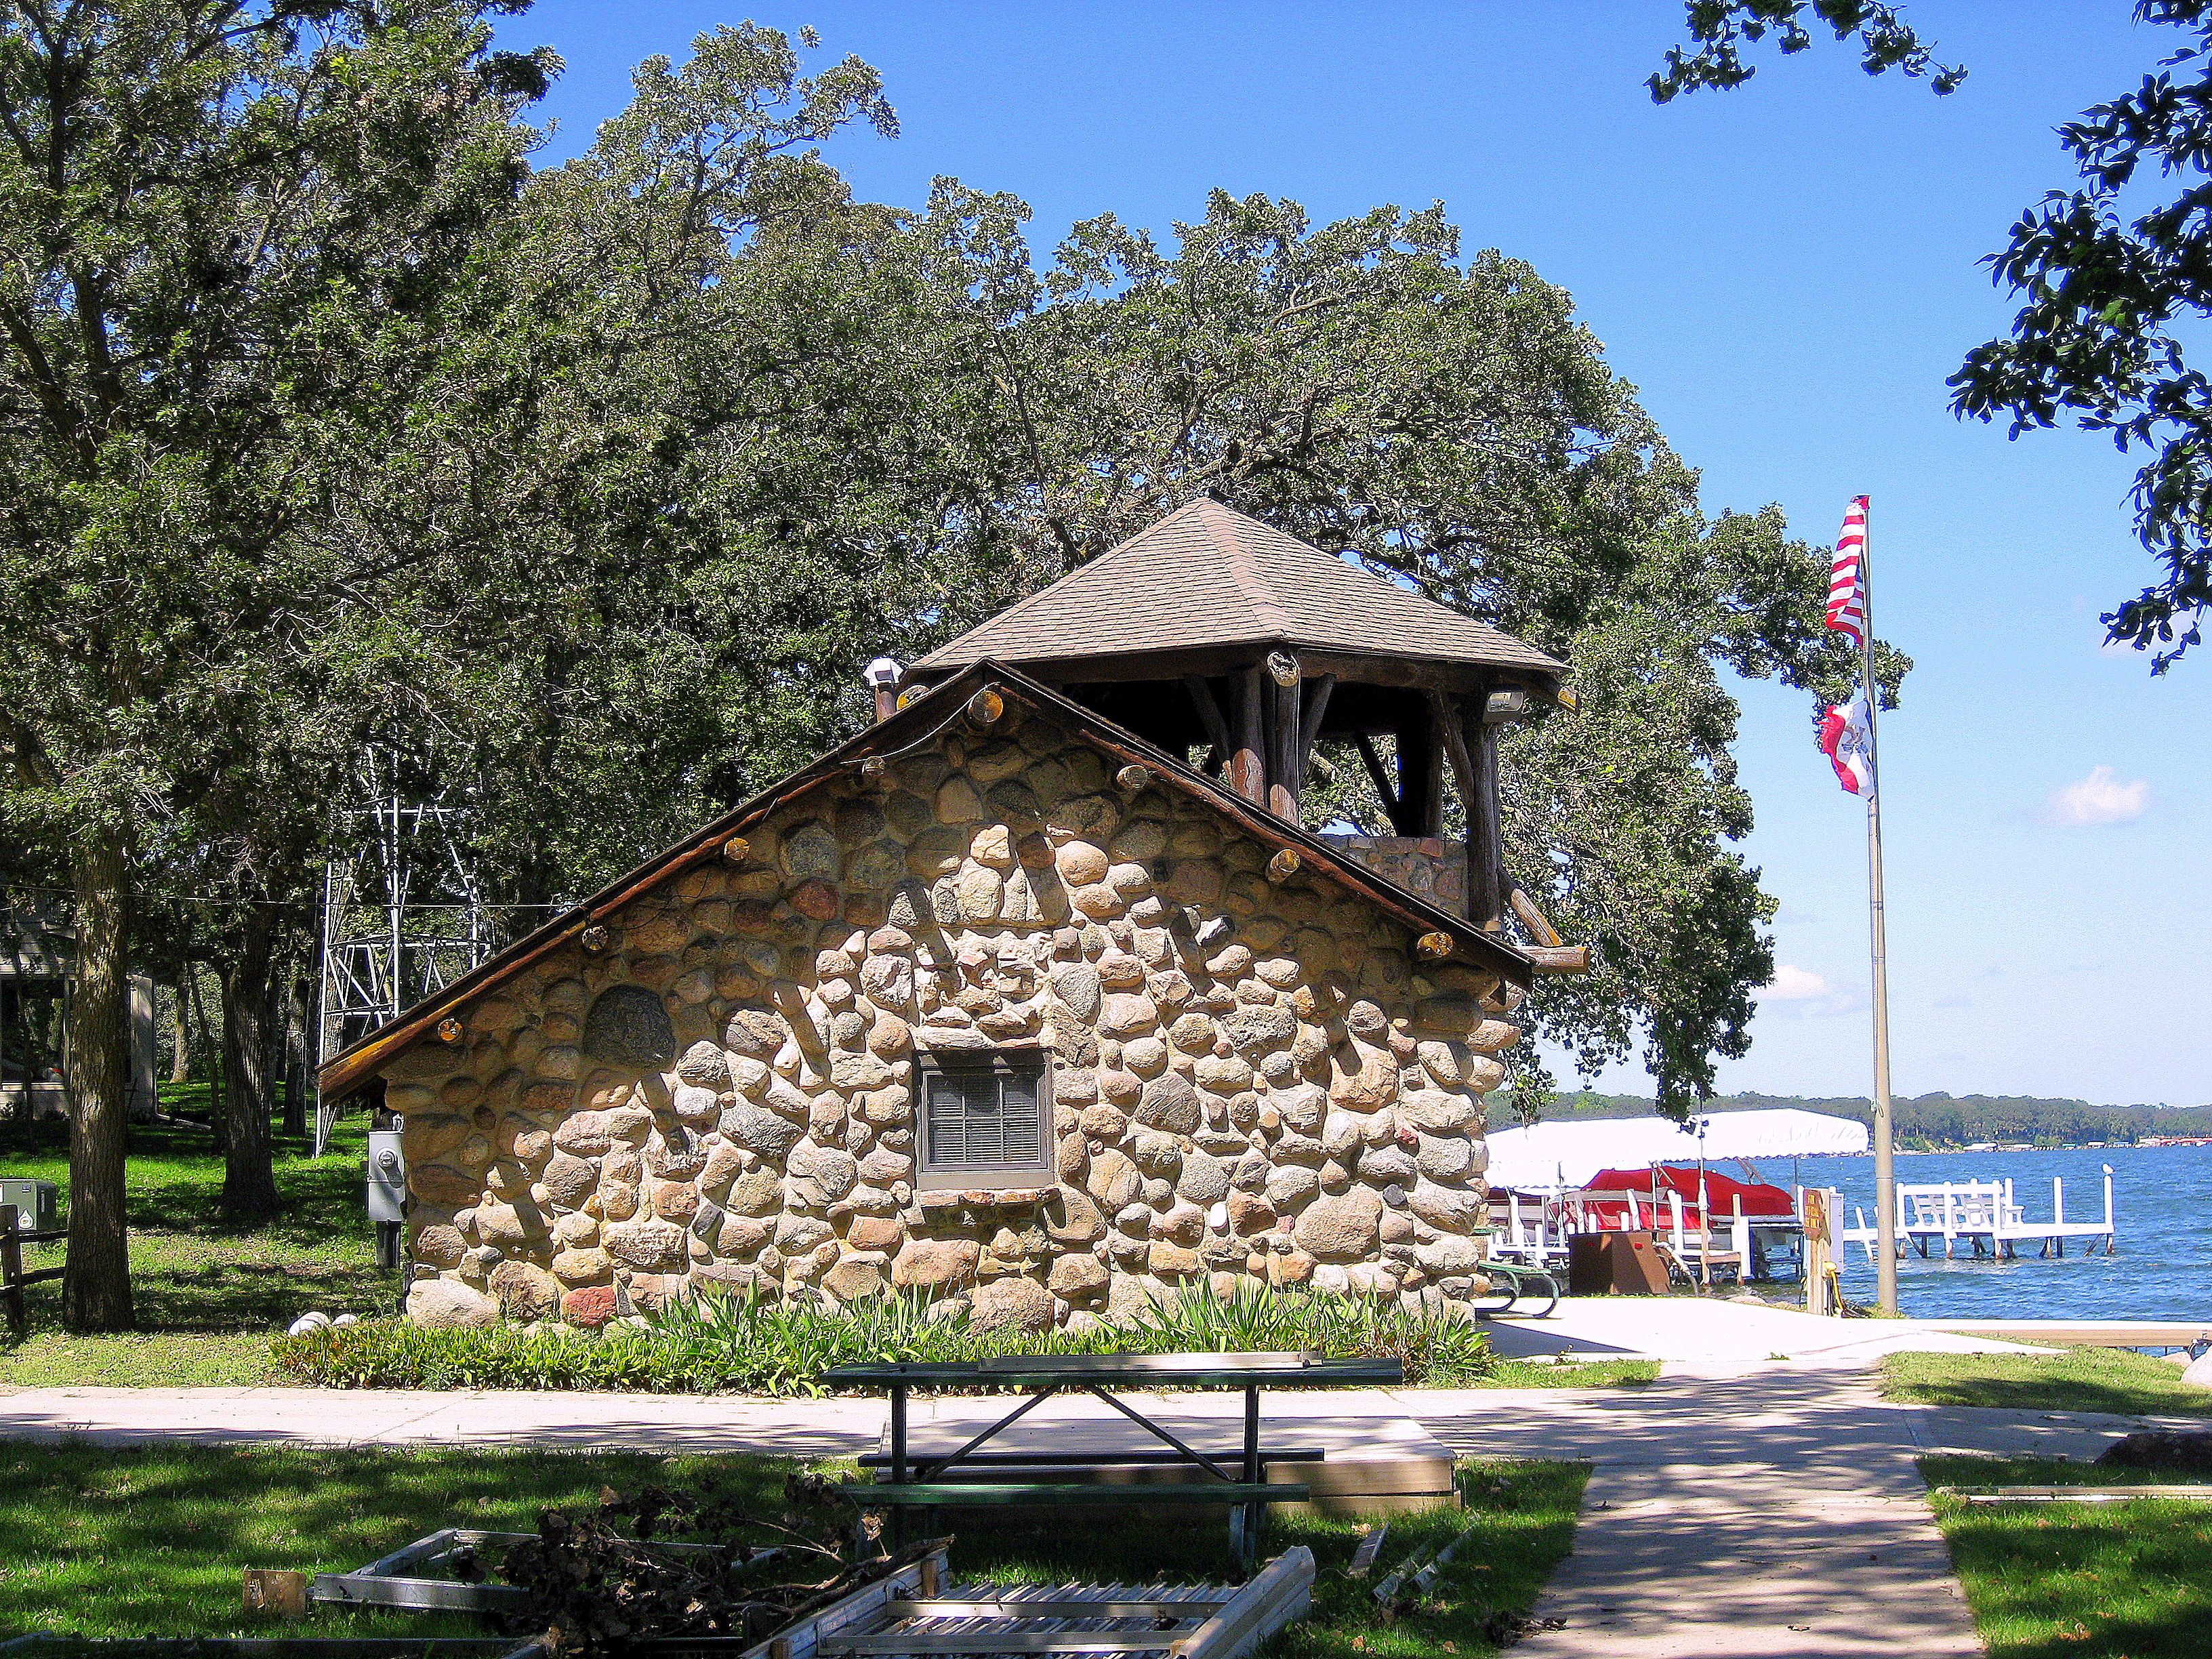 rentals pin rides cabins cabin iowa okoboji long defiance state park on summer days to estherville bike fort ft hot